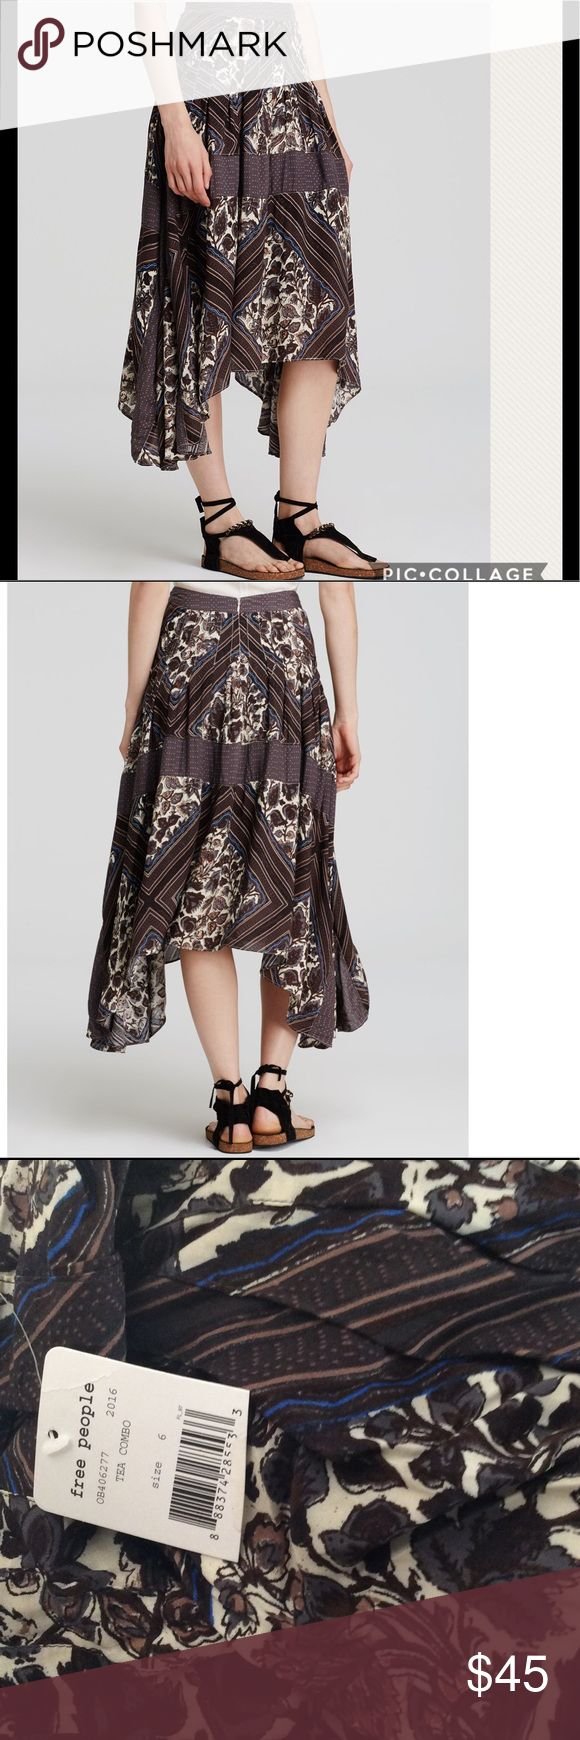 """NWT Free People Paradise Midi Skirt An eclectic mix of florals and stripes converge on this flirty-meets-free-spirited skirt from Free People. Banded waist, pleated, side slit pockets Concealed zip back closure, printed, asymmetric handkerchief hem Rayon. Unlined.  Machine wash. Waist 30"""" Free People Skirts Midi"""